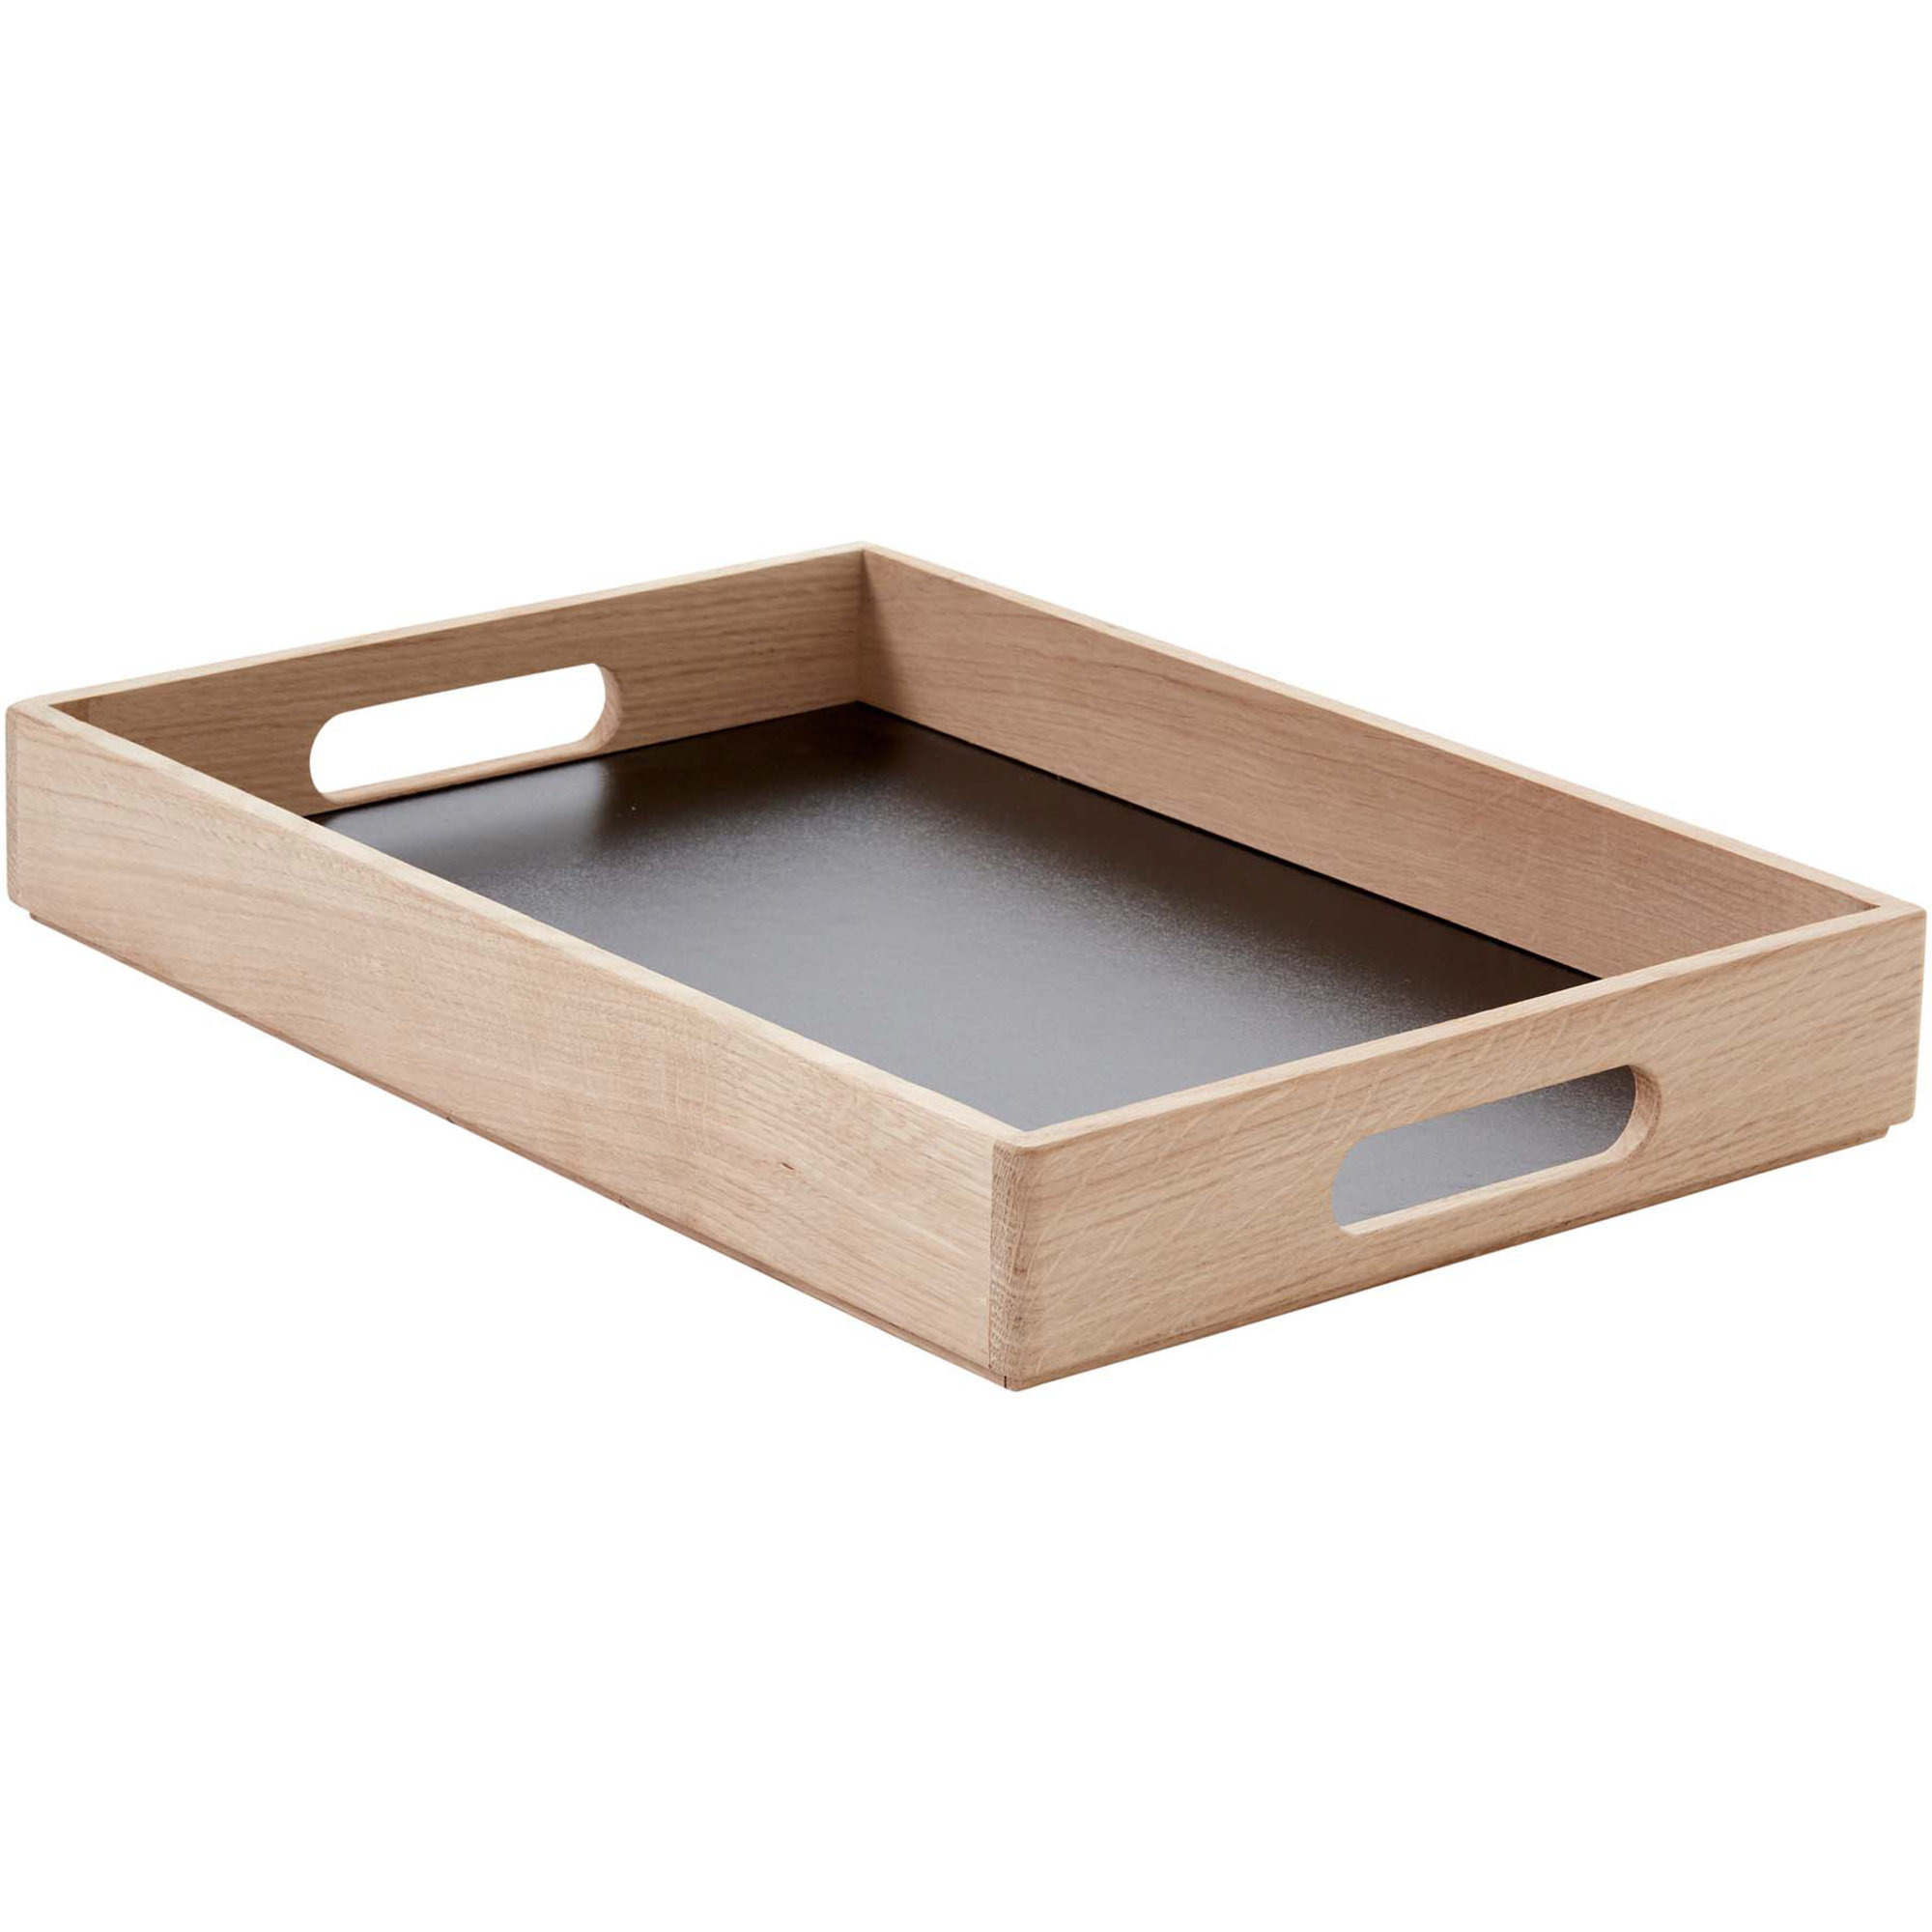 Andersen Furniture Bricka 40 x 28 cm Oak